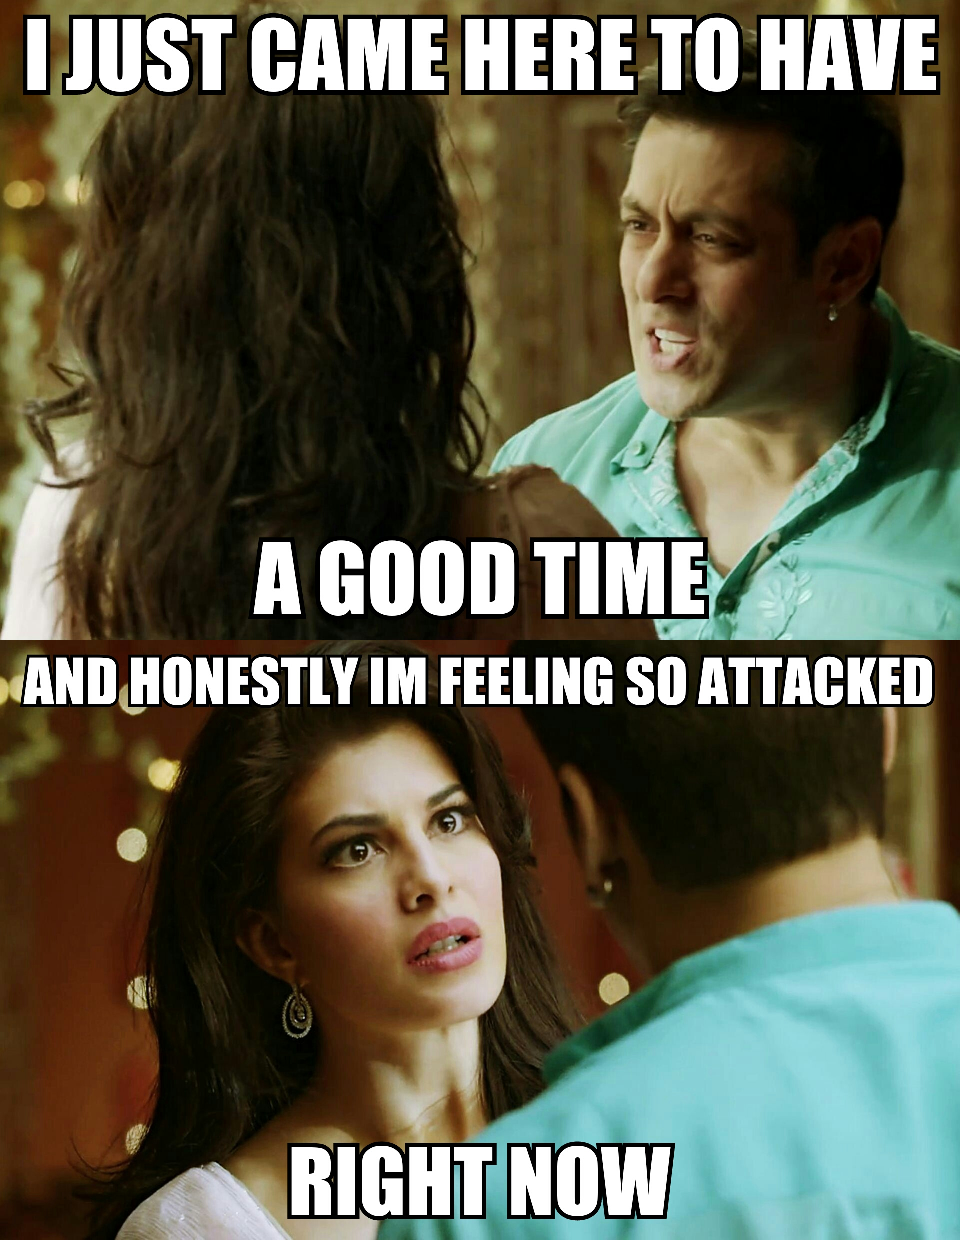 Salman Khan and Jacqueline Fernandez, Kick Argument Fight I just came to have a good time and honestly im feeling so attacked, bollywood meme, funny